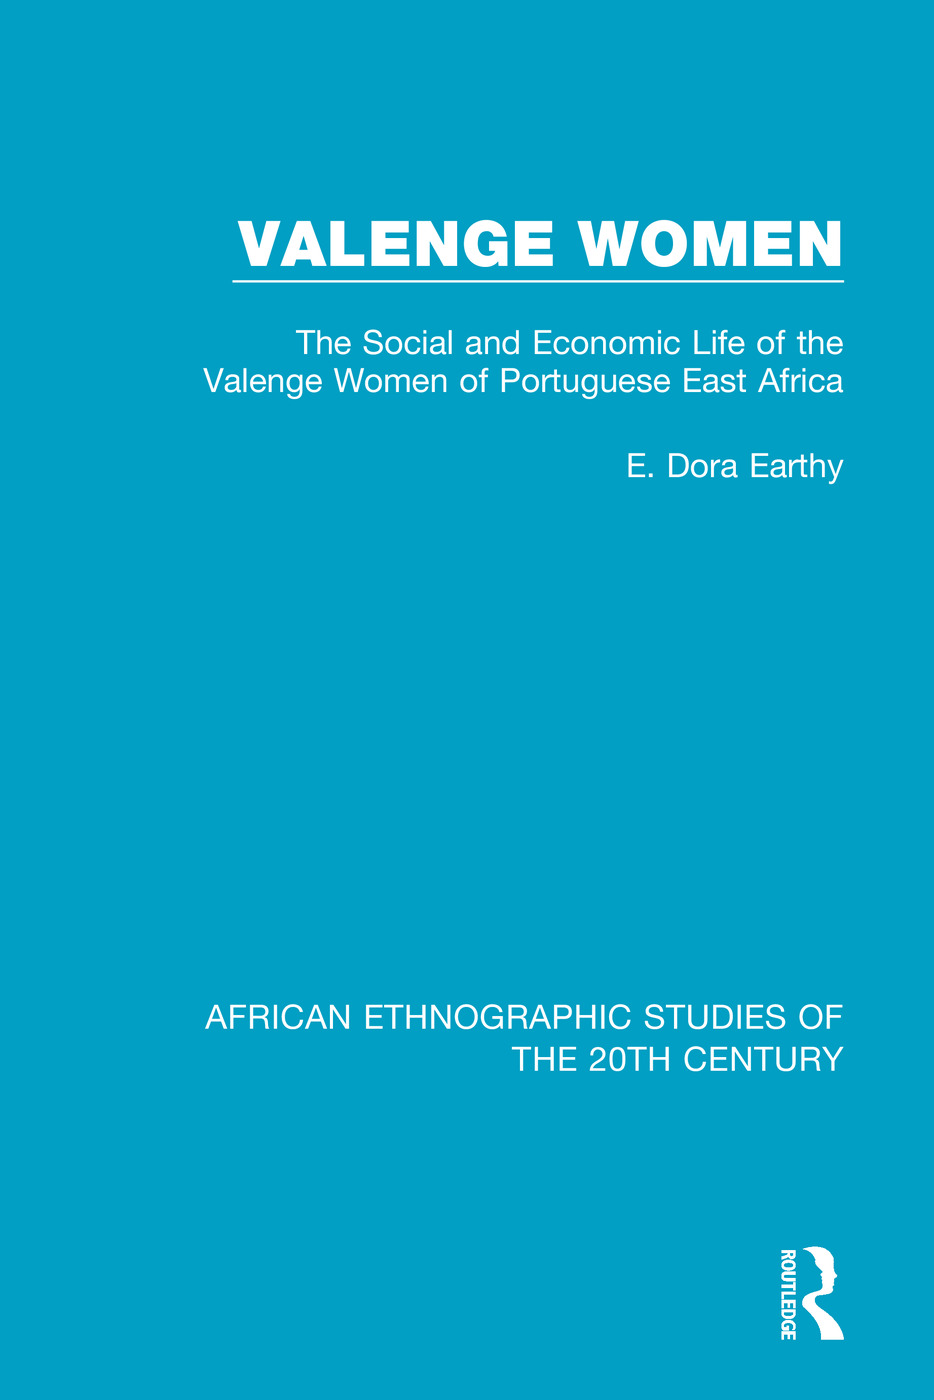 Valenge Women: Social and Economic Life of the Valenge Women of Portuguese East Africa book cover